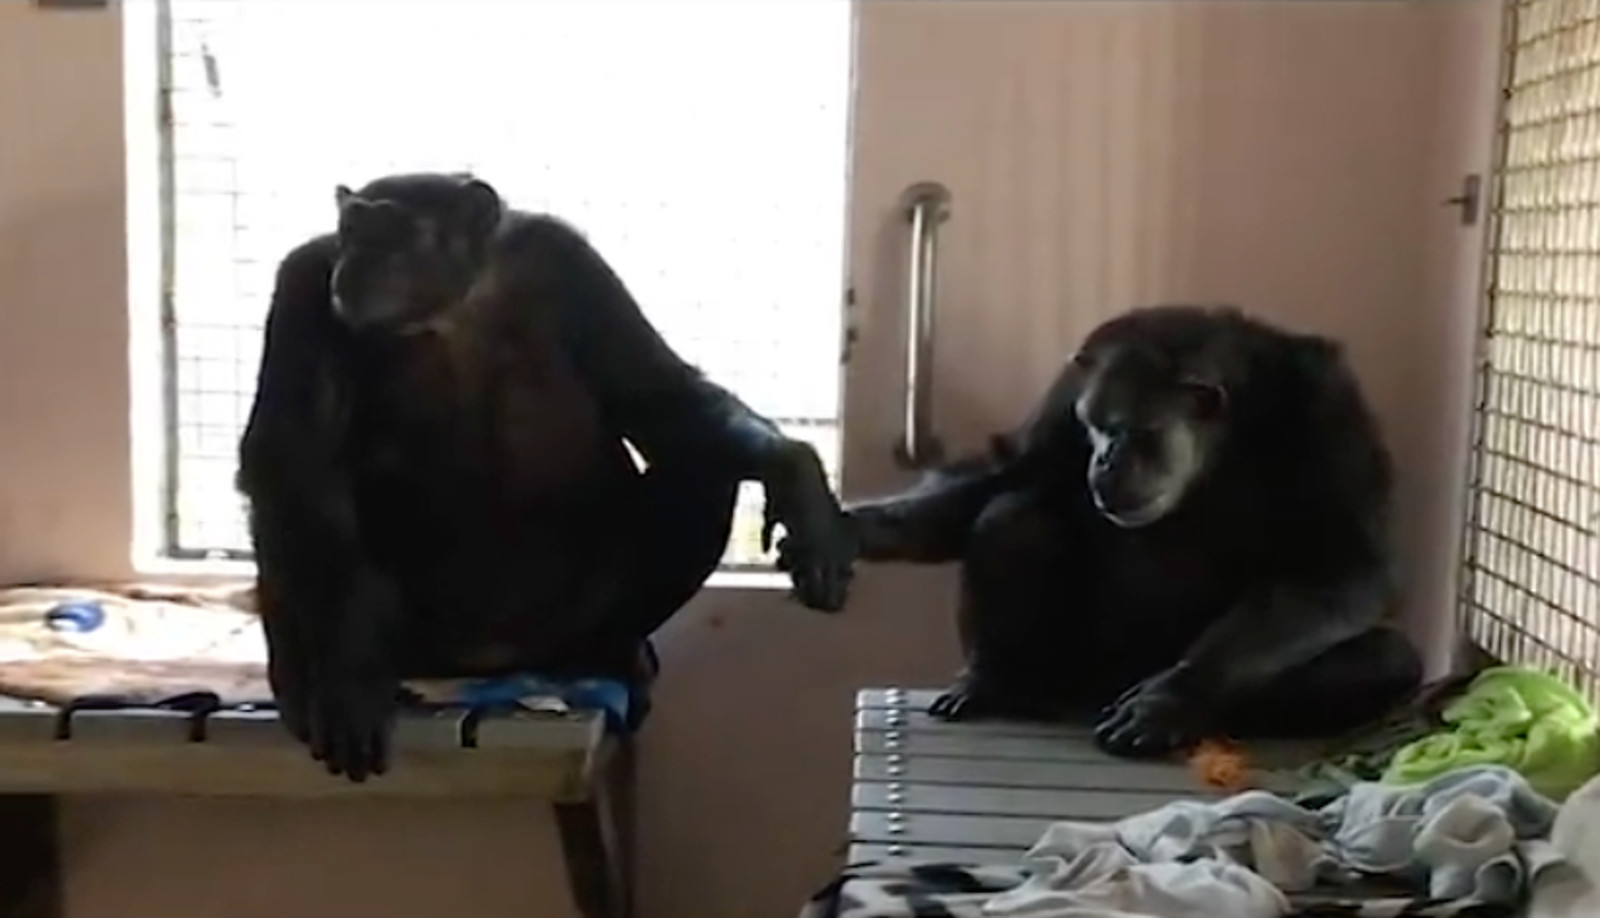 From Heartache to Heartwarming Friendship: The Story Behind the Adorable Handholding Chimps